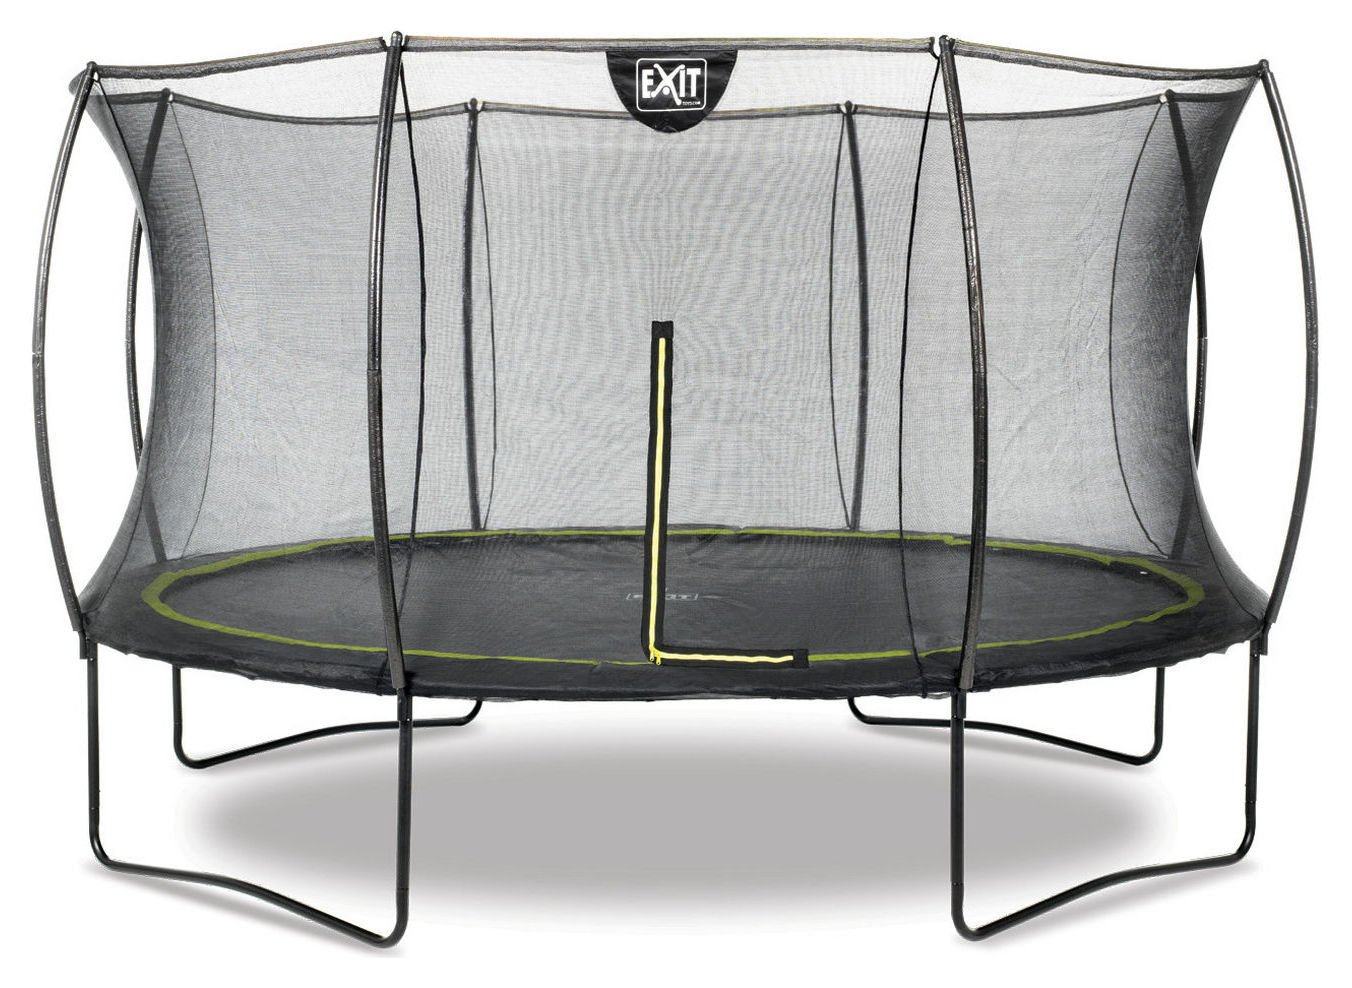 Image of EXIT - 12ft Black Edition - Trampoline